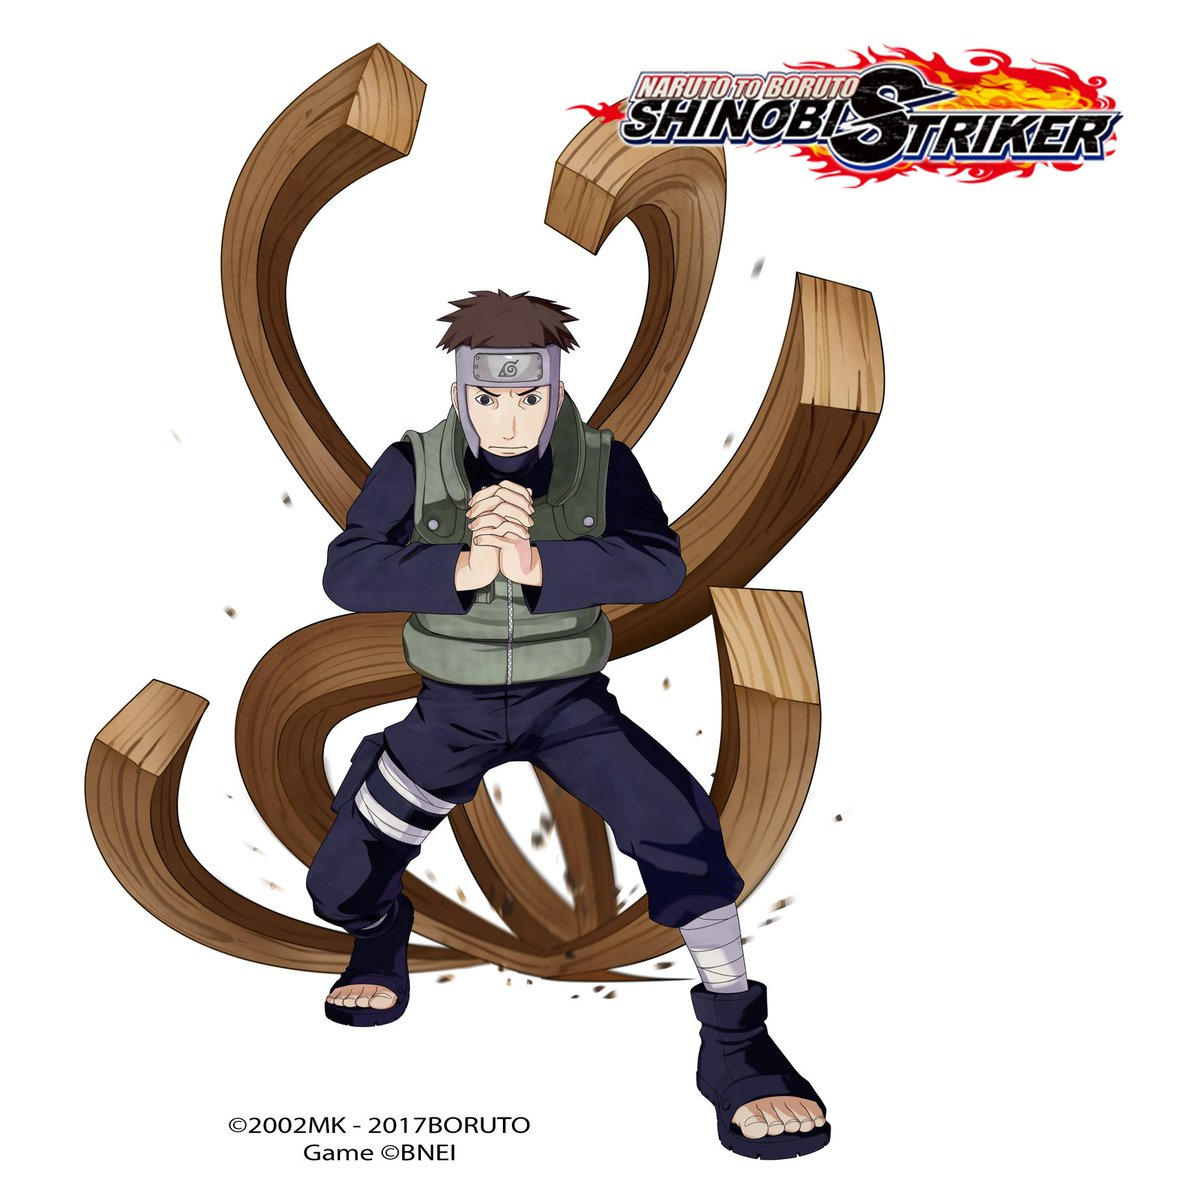 Naruto VideoGames on Twitter: